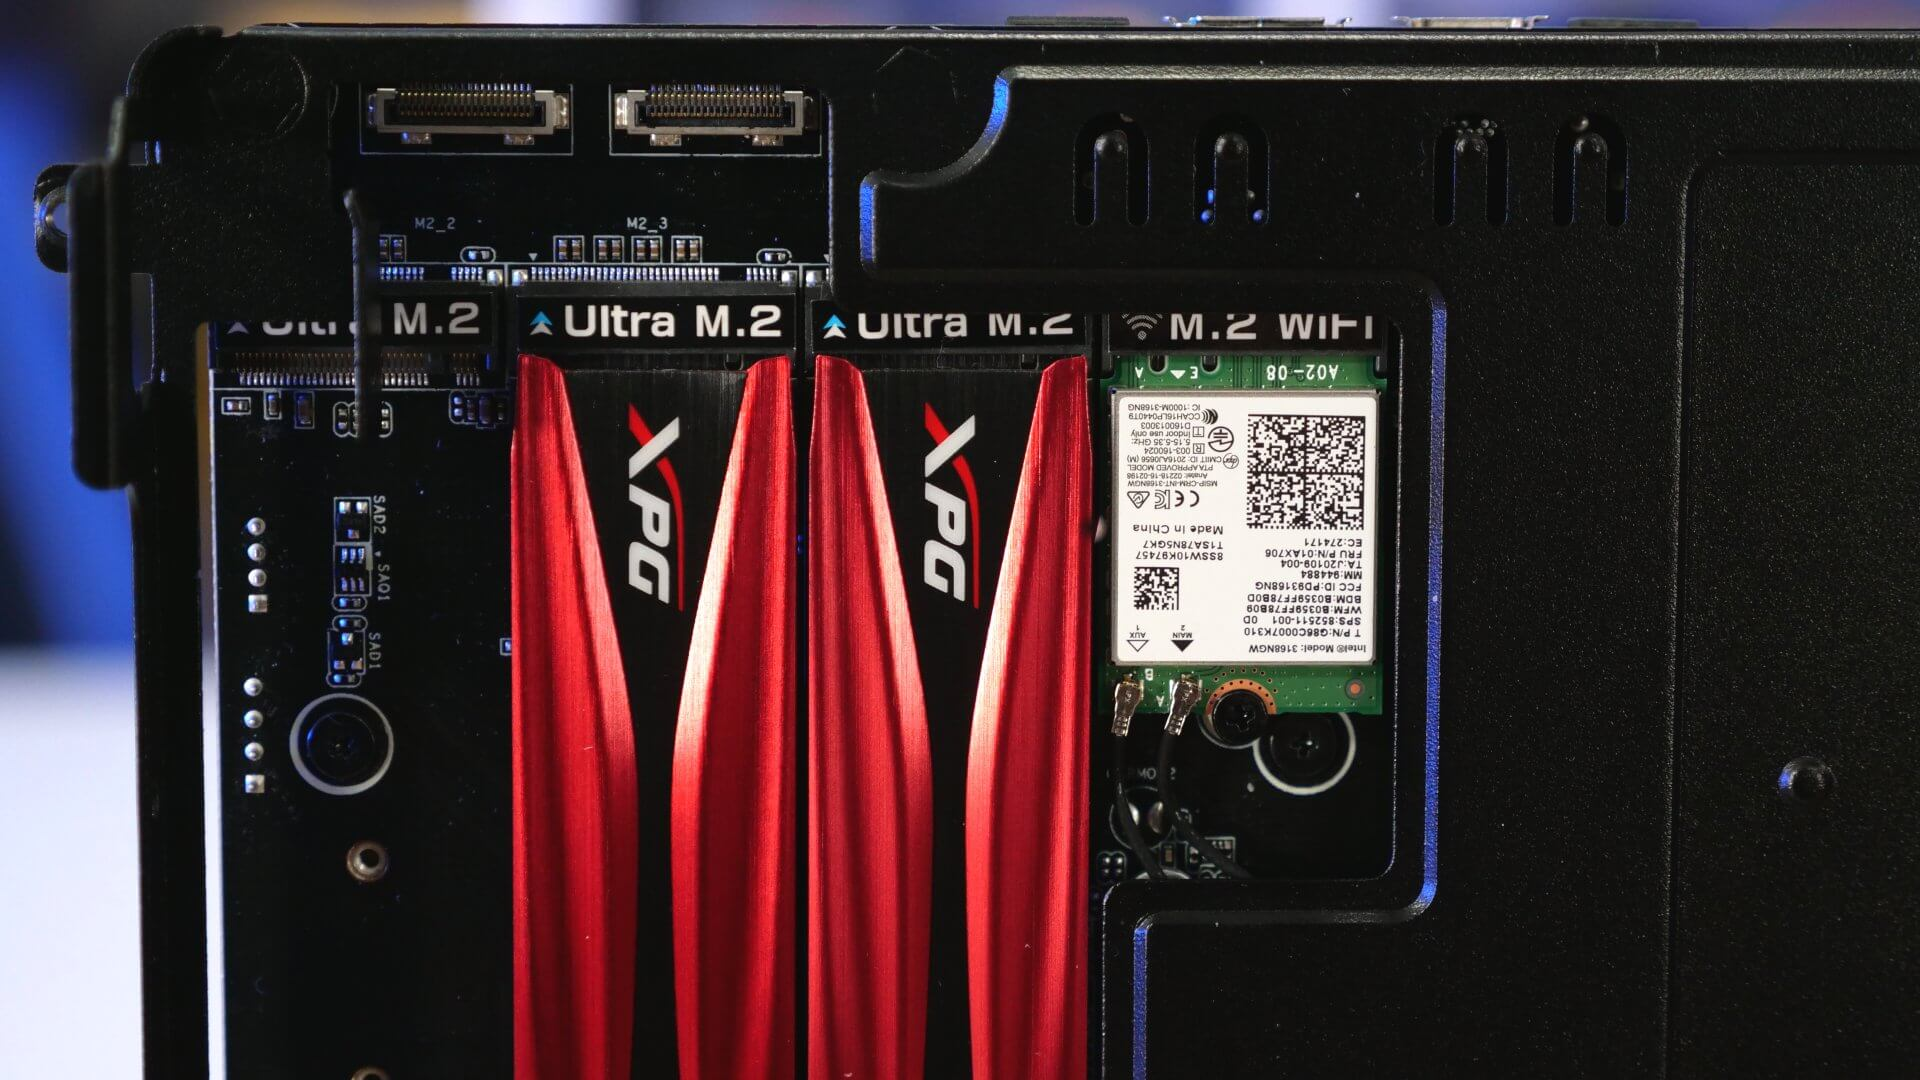 For testing we ve installed a Core i7 8700 processor a pair of Team Group s DDR4 2400 8GB modules and for storage two ADATA XPG GAMMIX S10 NVMe SSDs